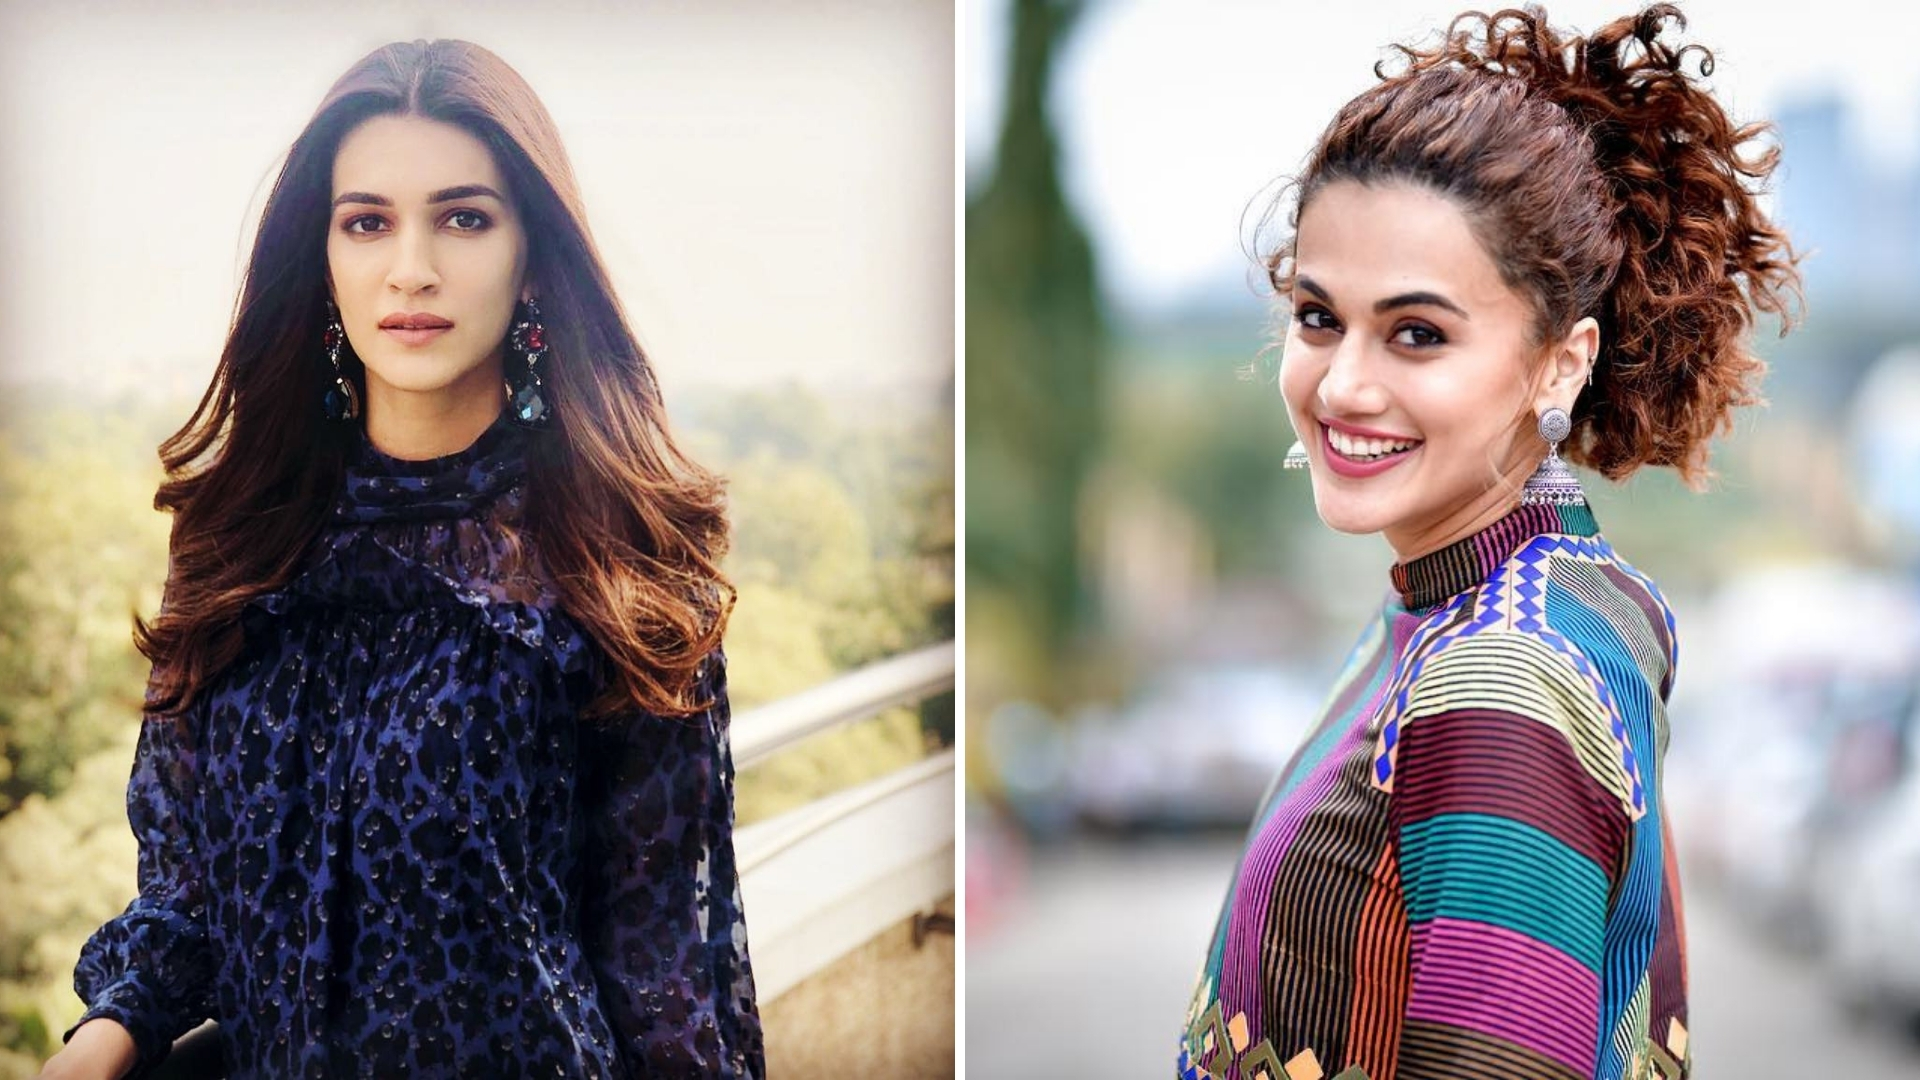 Taapsee, Kriti Sanon Slam Twitter Account for Not Crediting Them